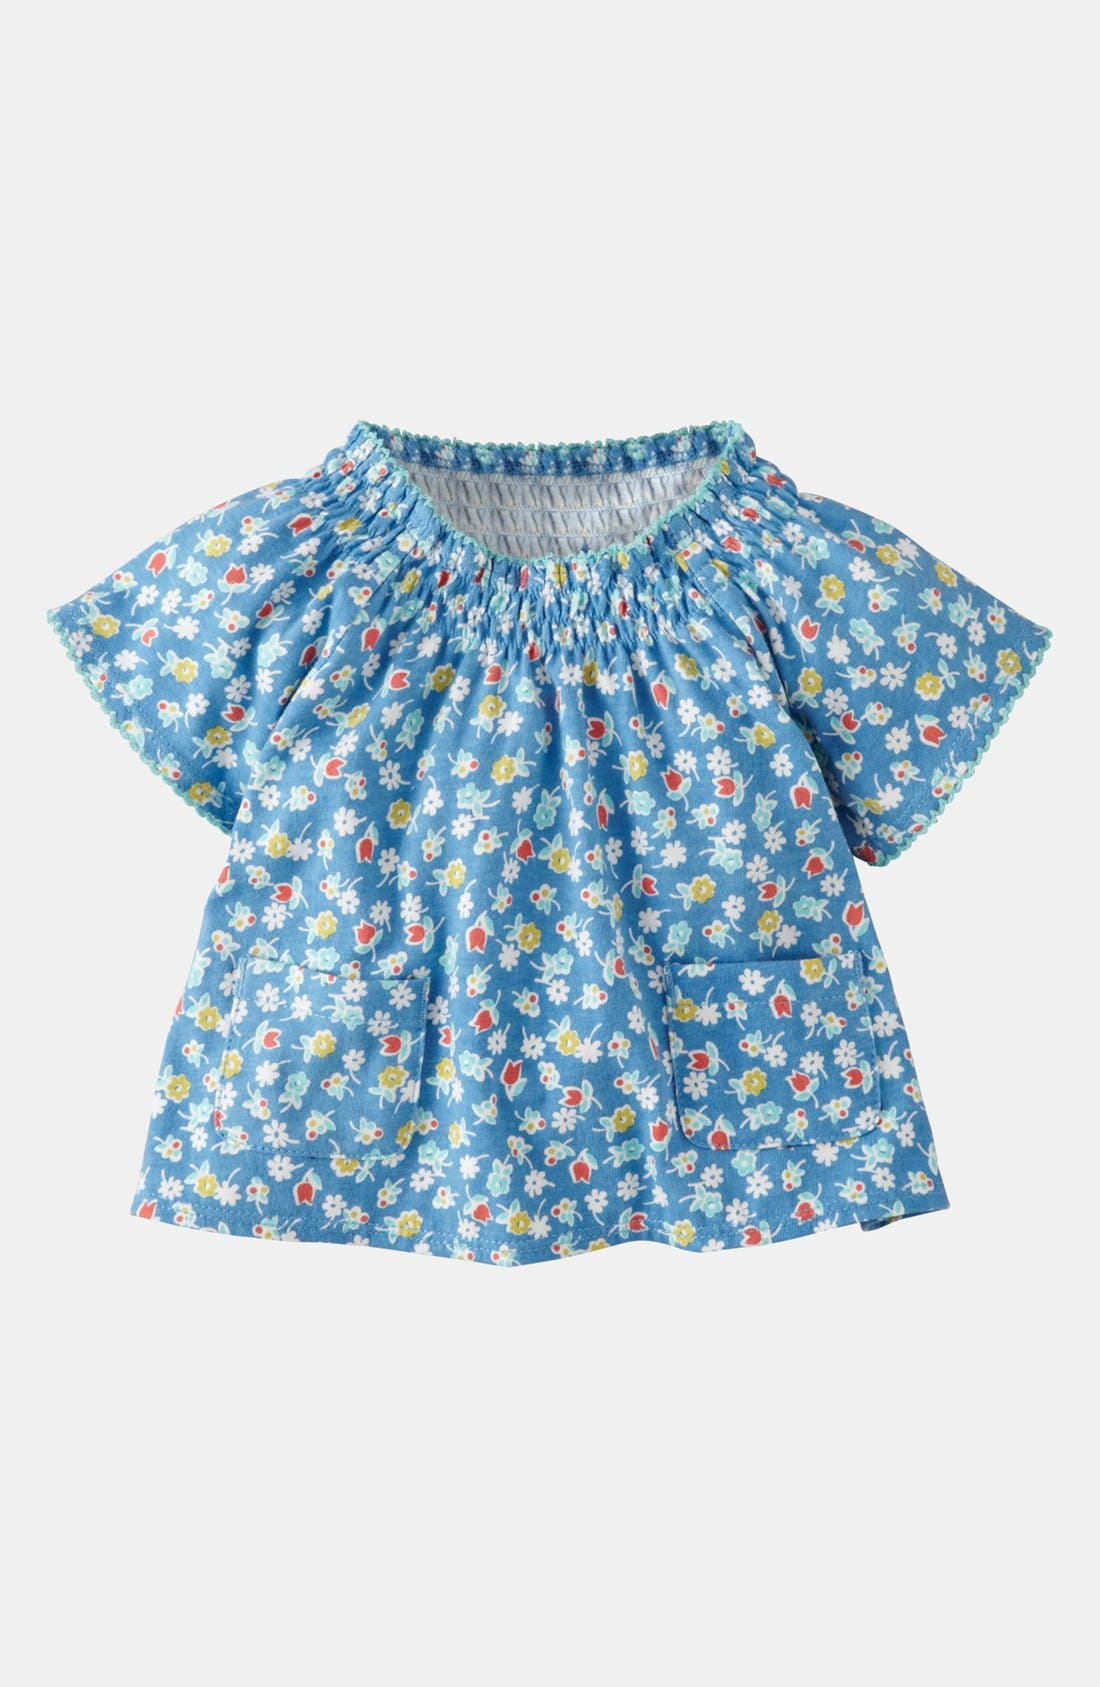 Main Image - Mini Boden Ditsy Print Top (Baby)